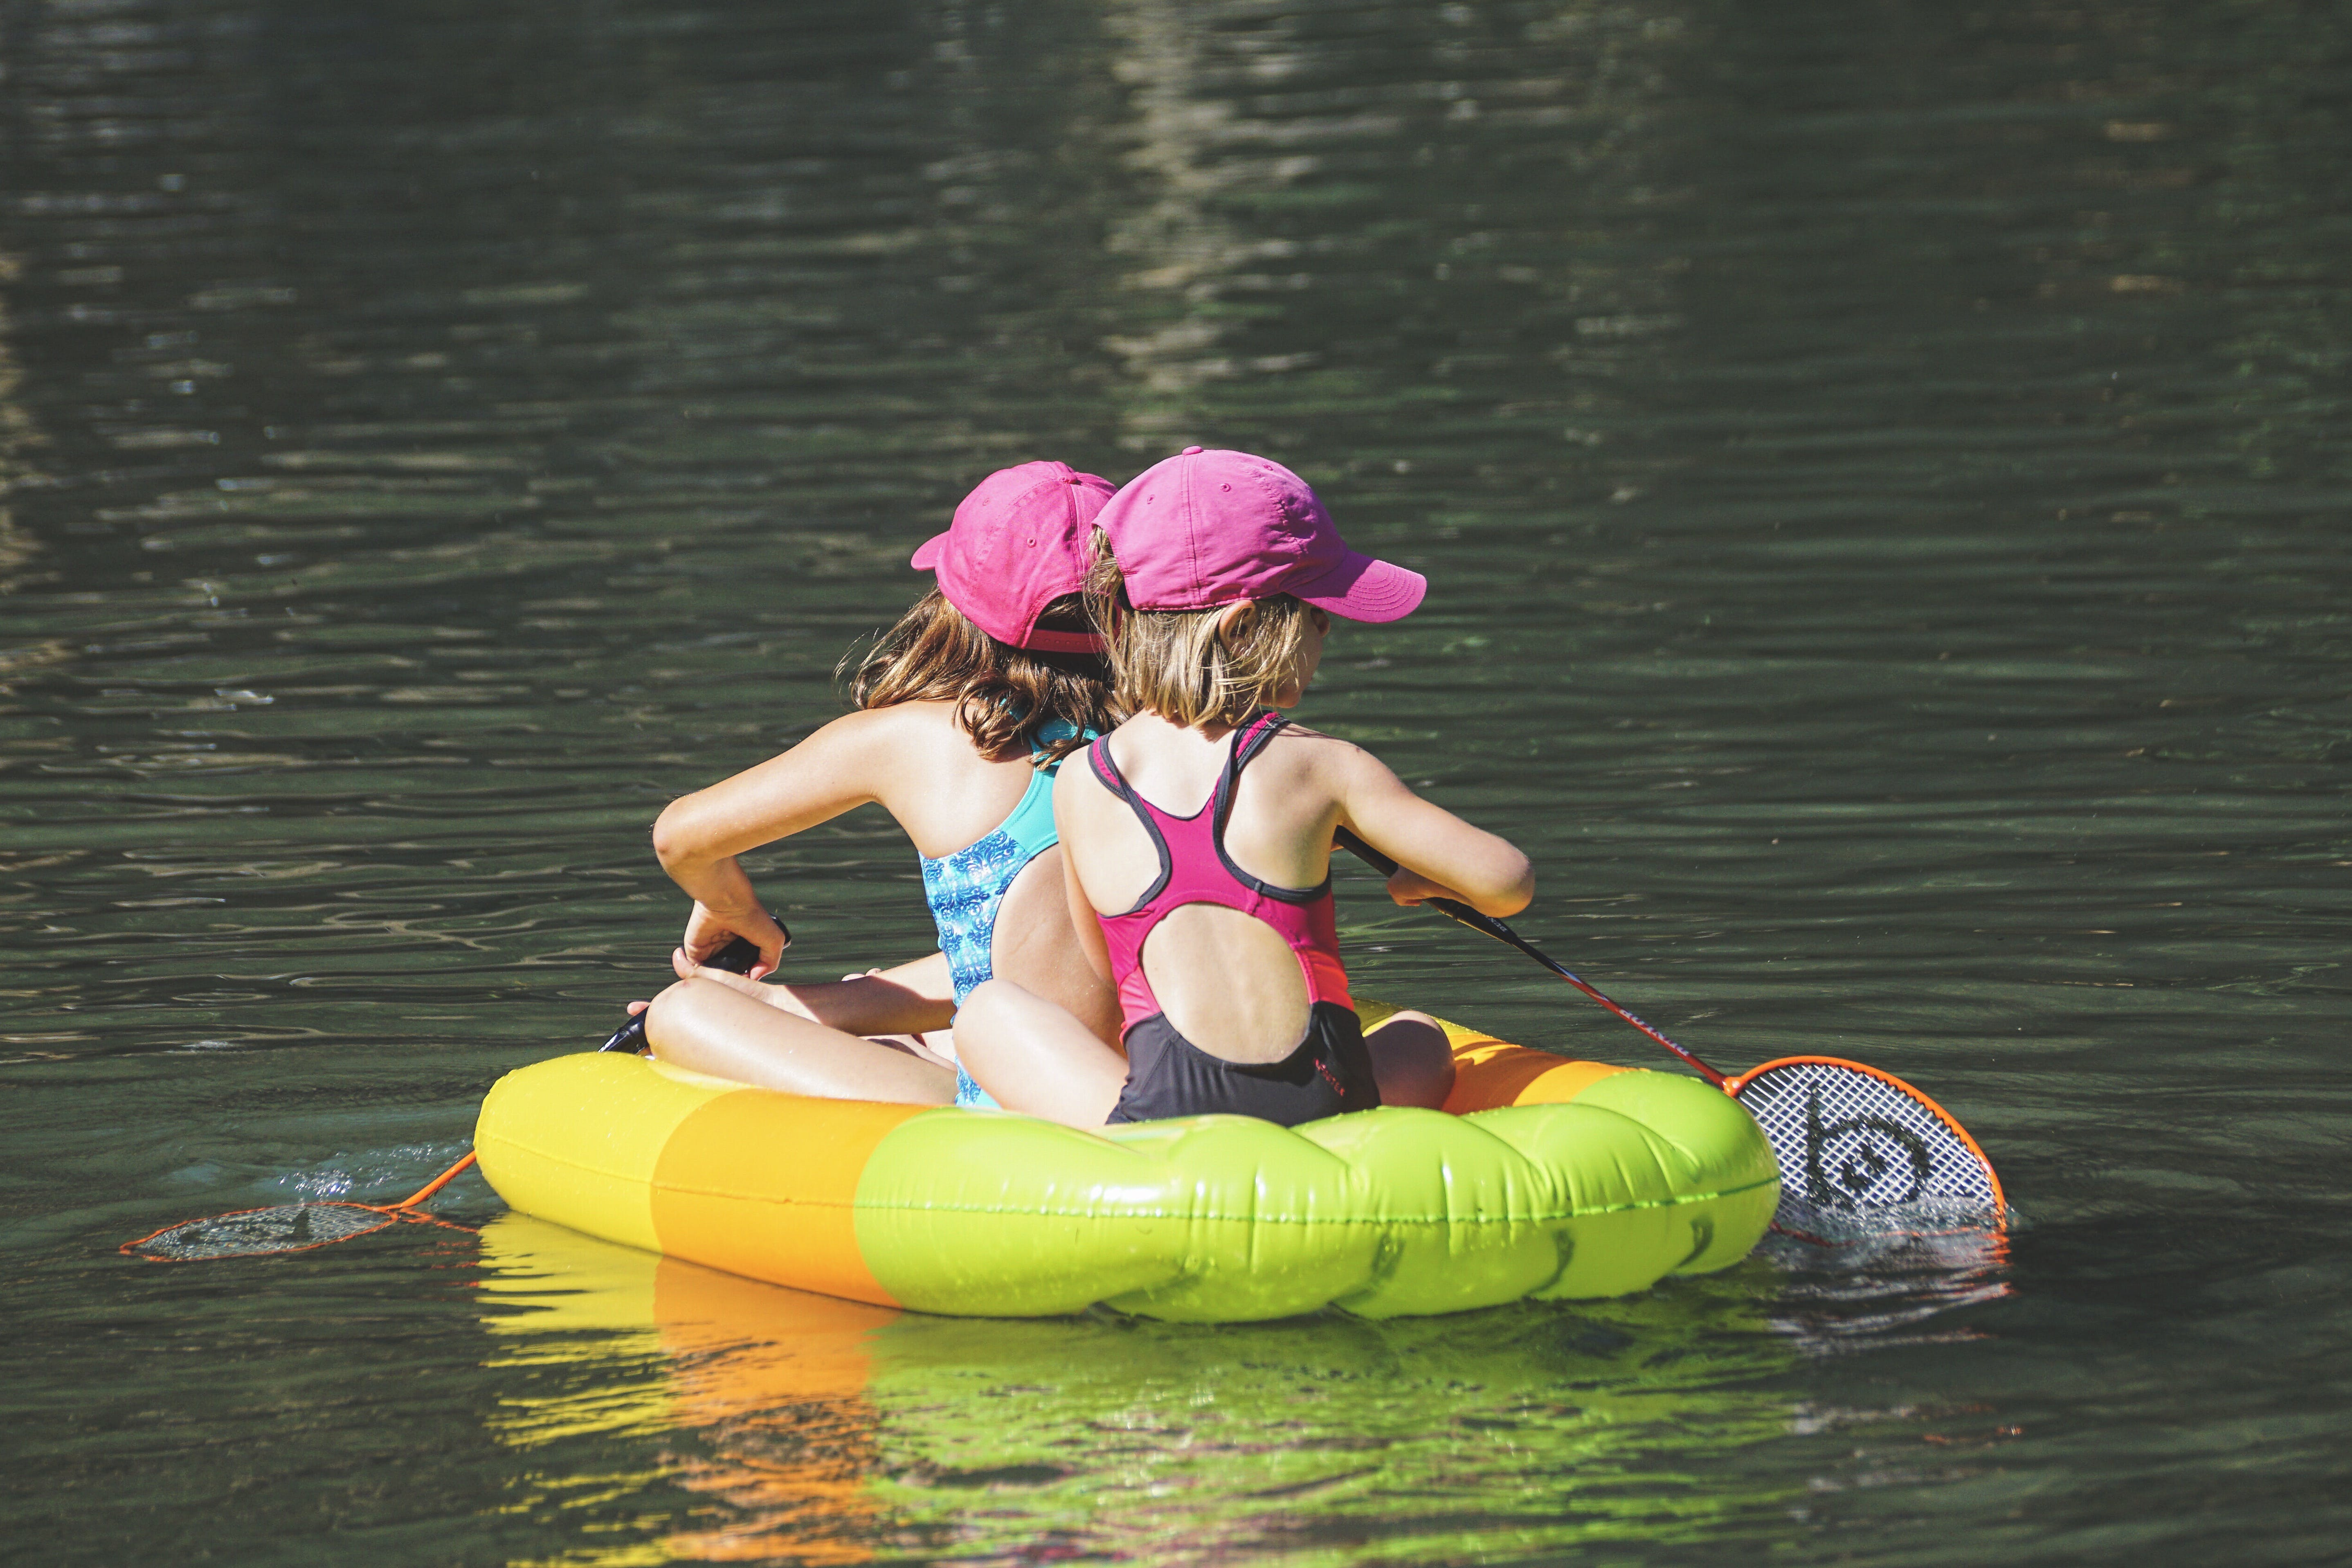 Two Girls in Floating and Paddling Using Badminton Rackets